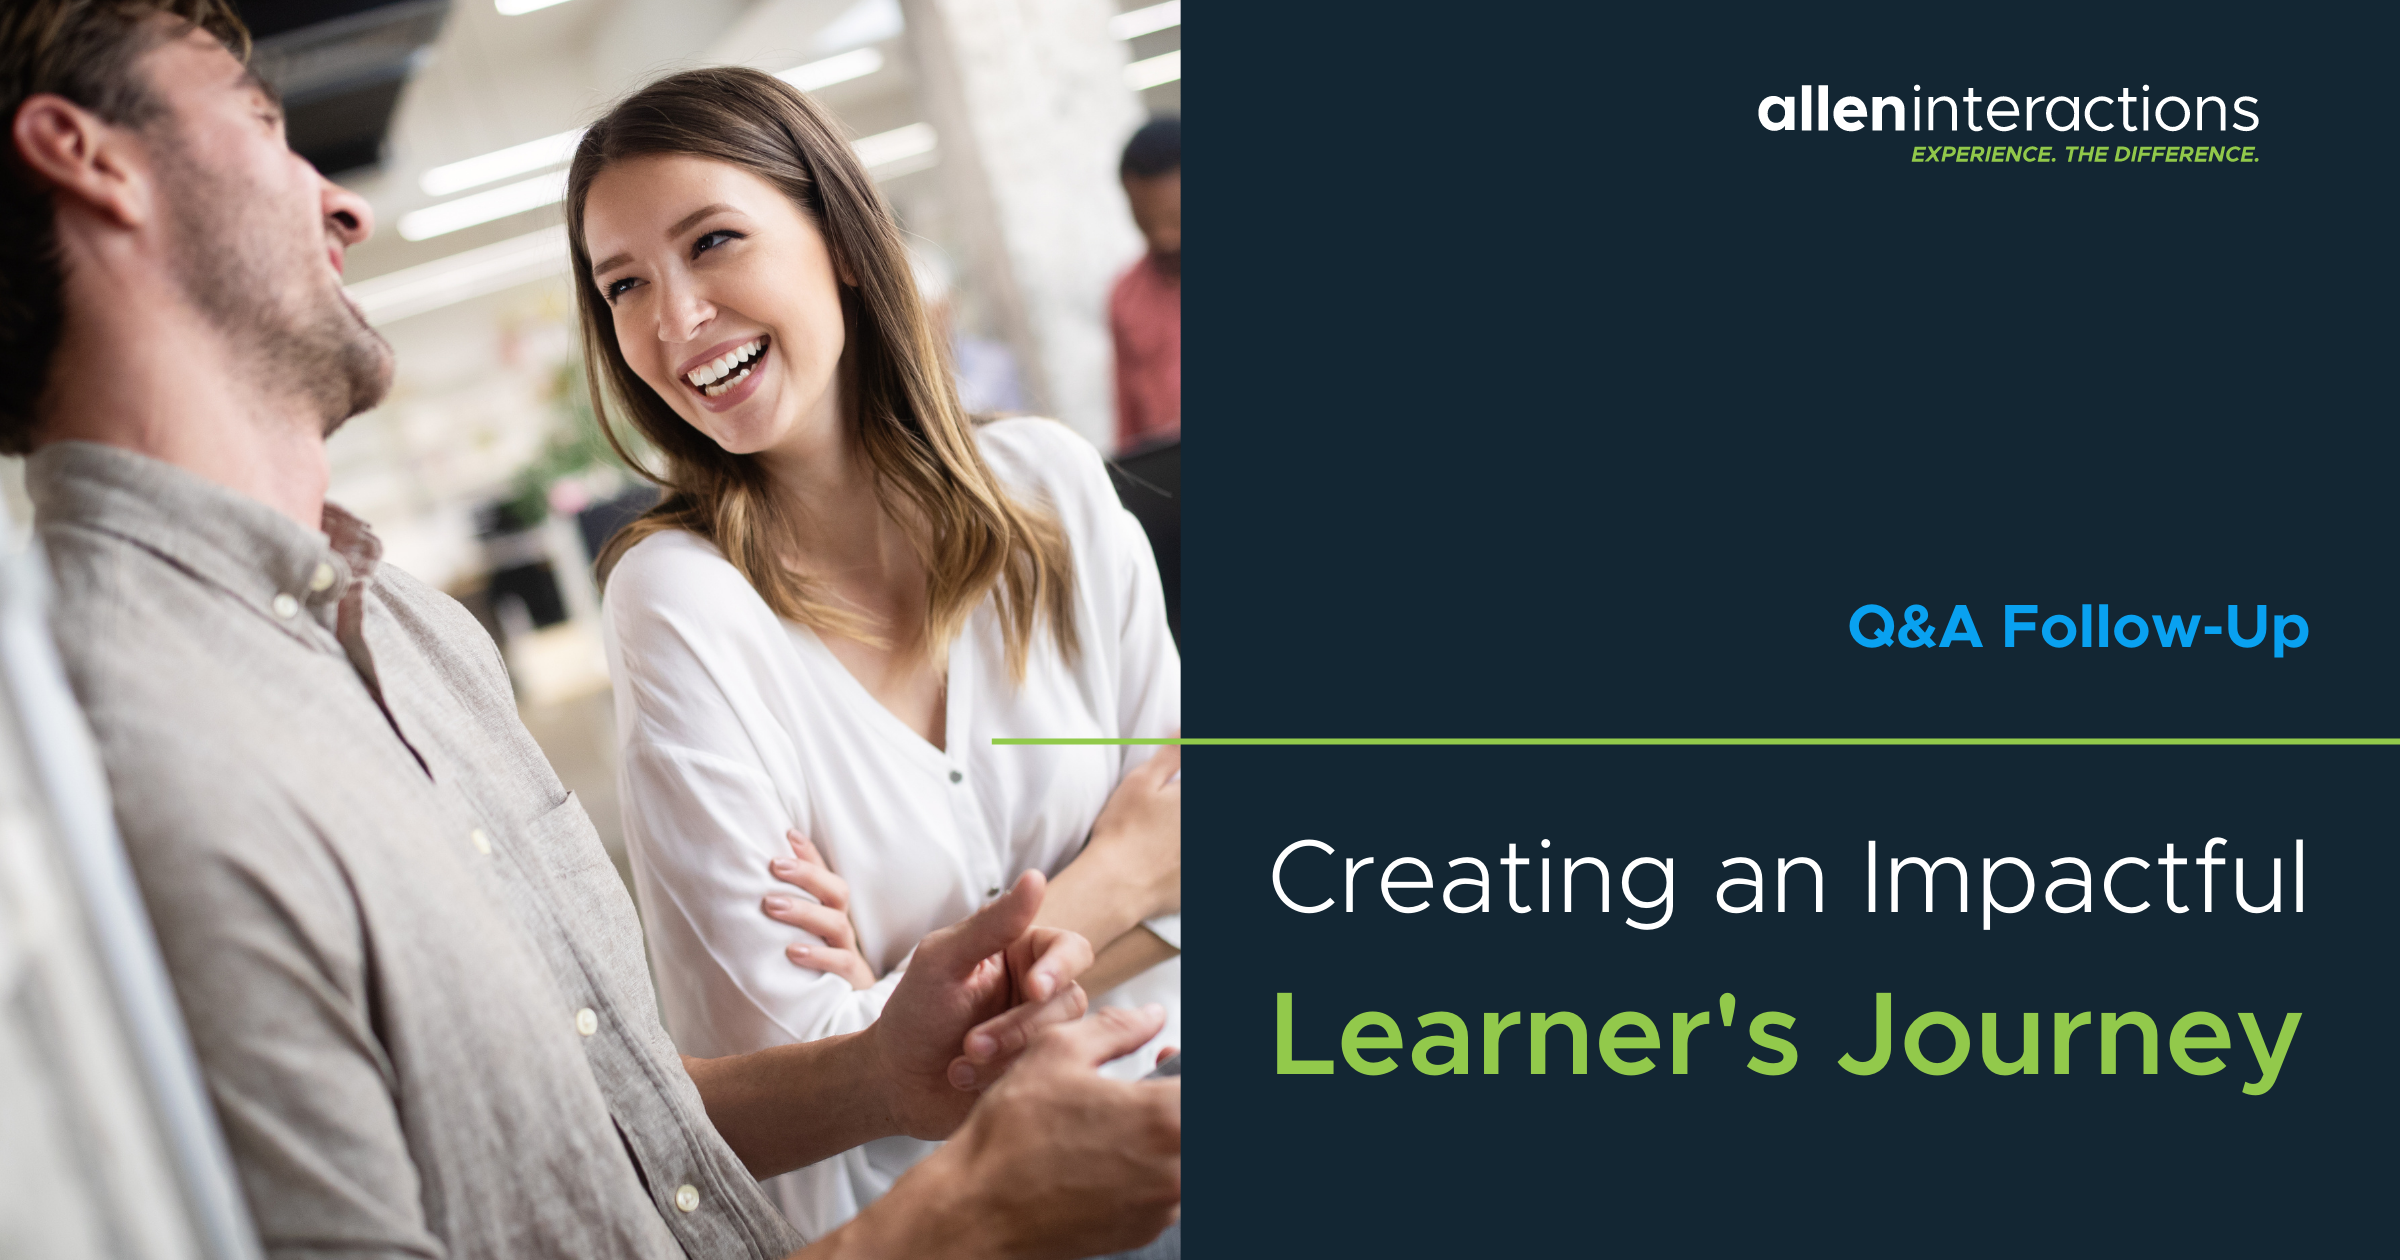 Q&A Follow-up: Creating An Impactful Learner's Journey